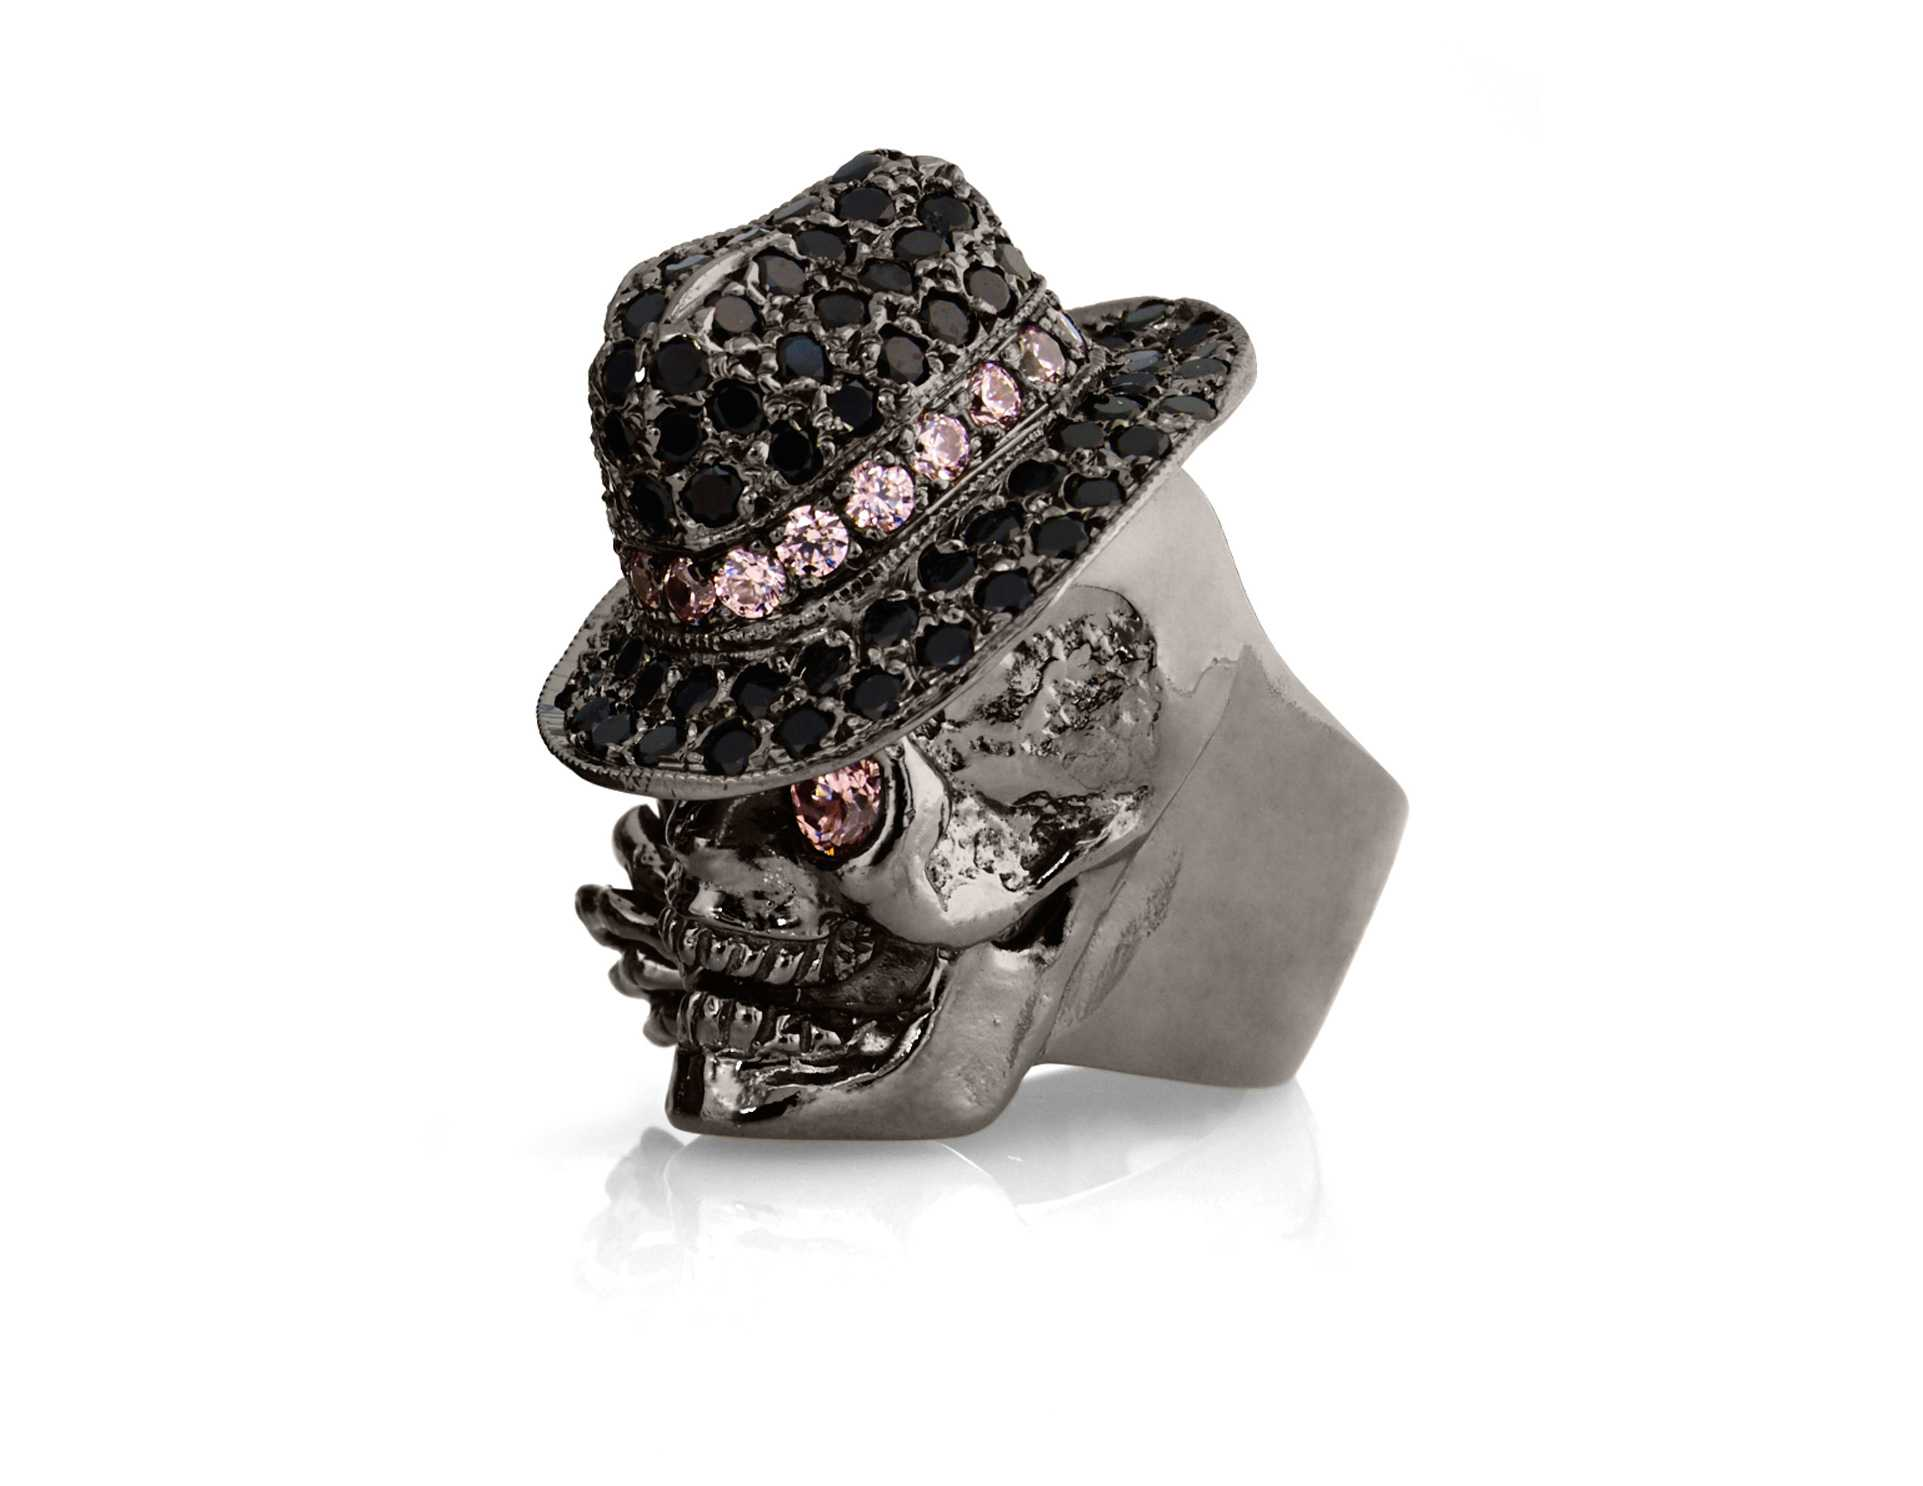 RG100BK-RS-BK The Gangster Skull Ring in Rhodium Plated Sterling Silver with Black & Rose Stones (Black Collection), designed by Steve Soffa